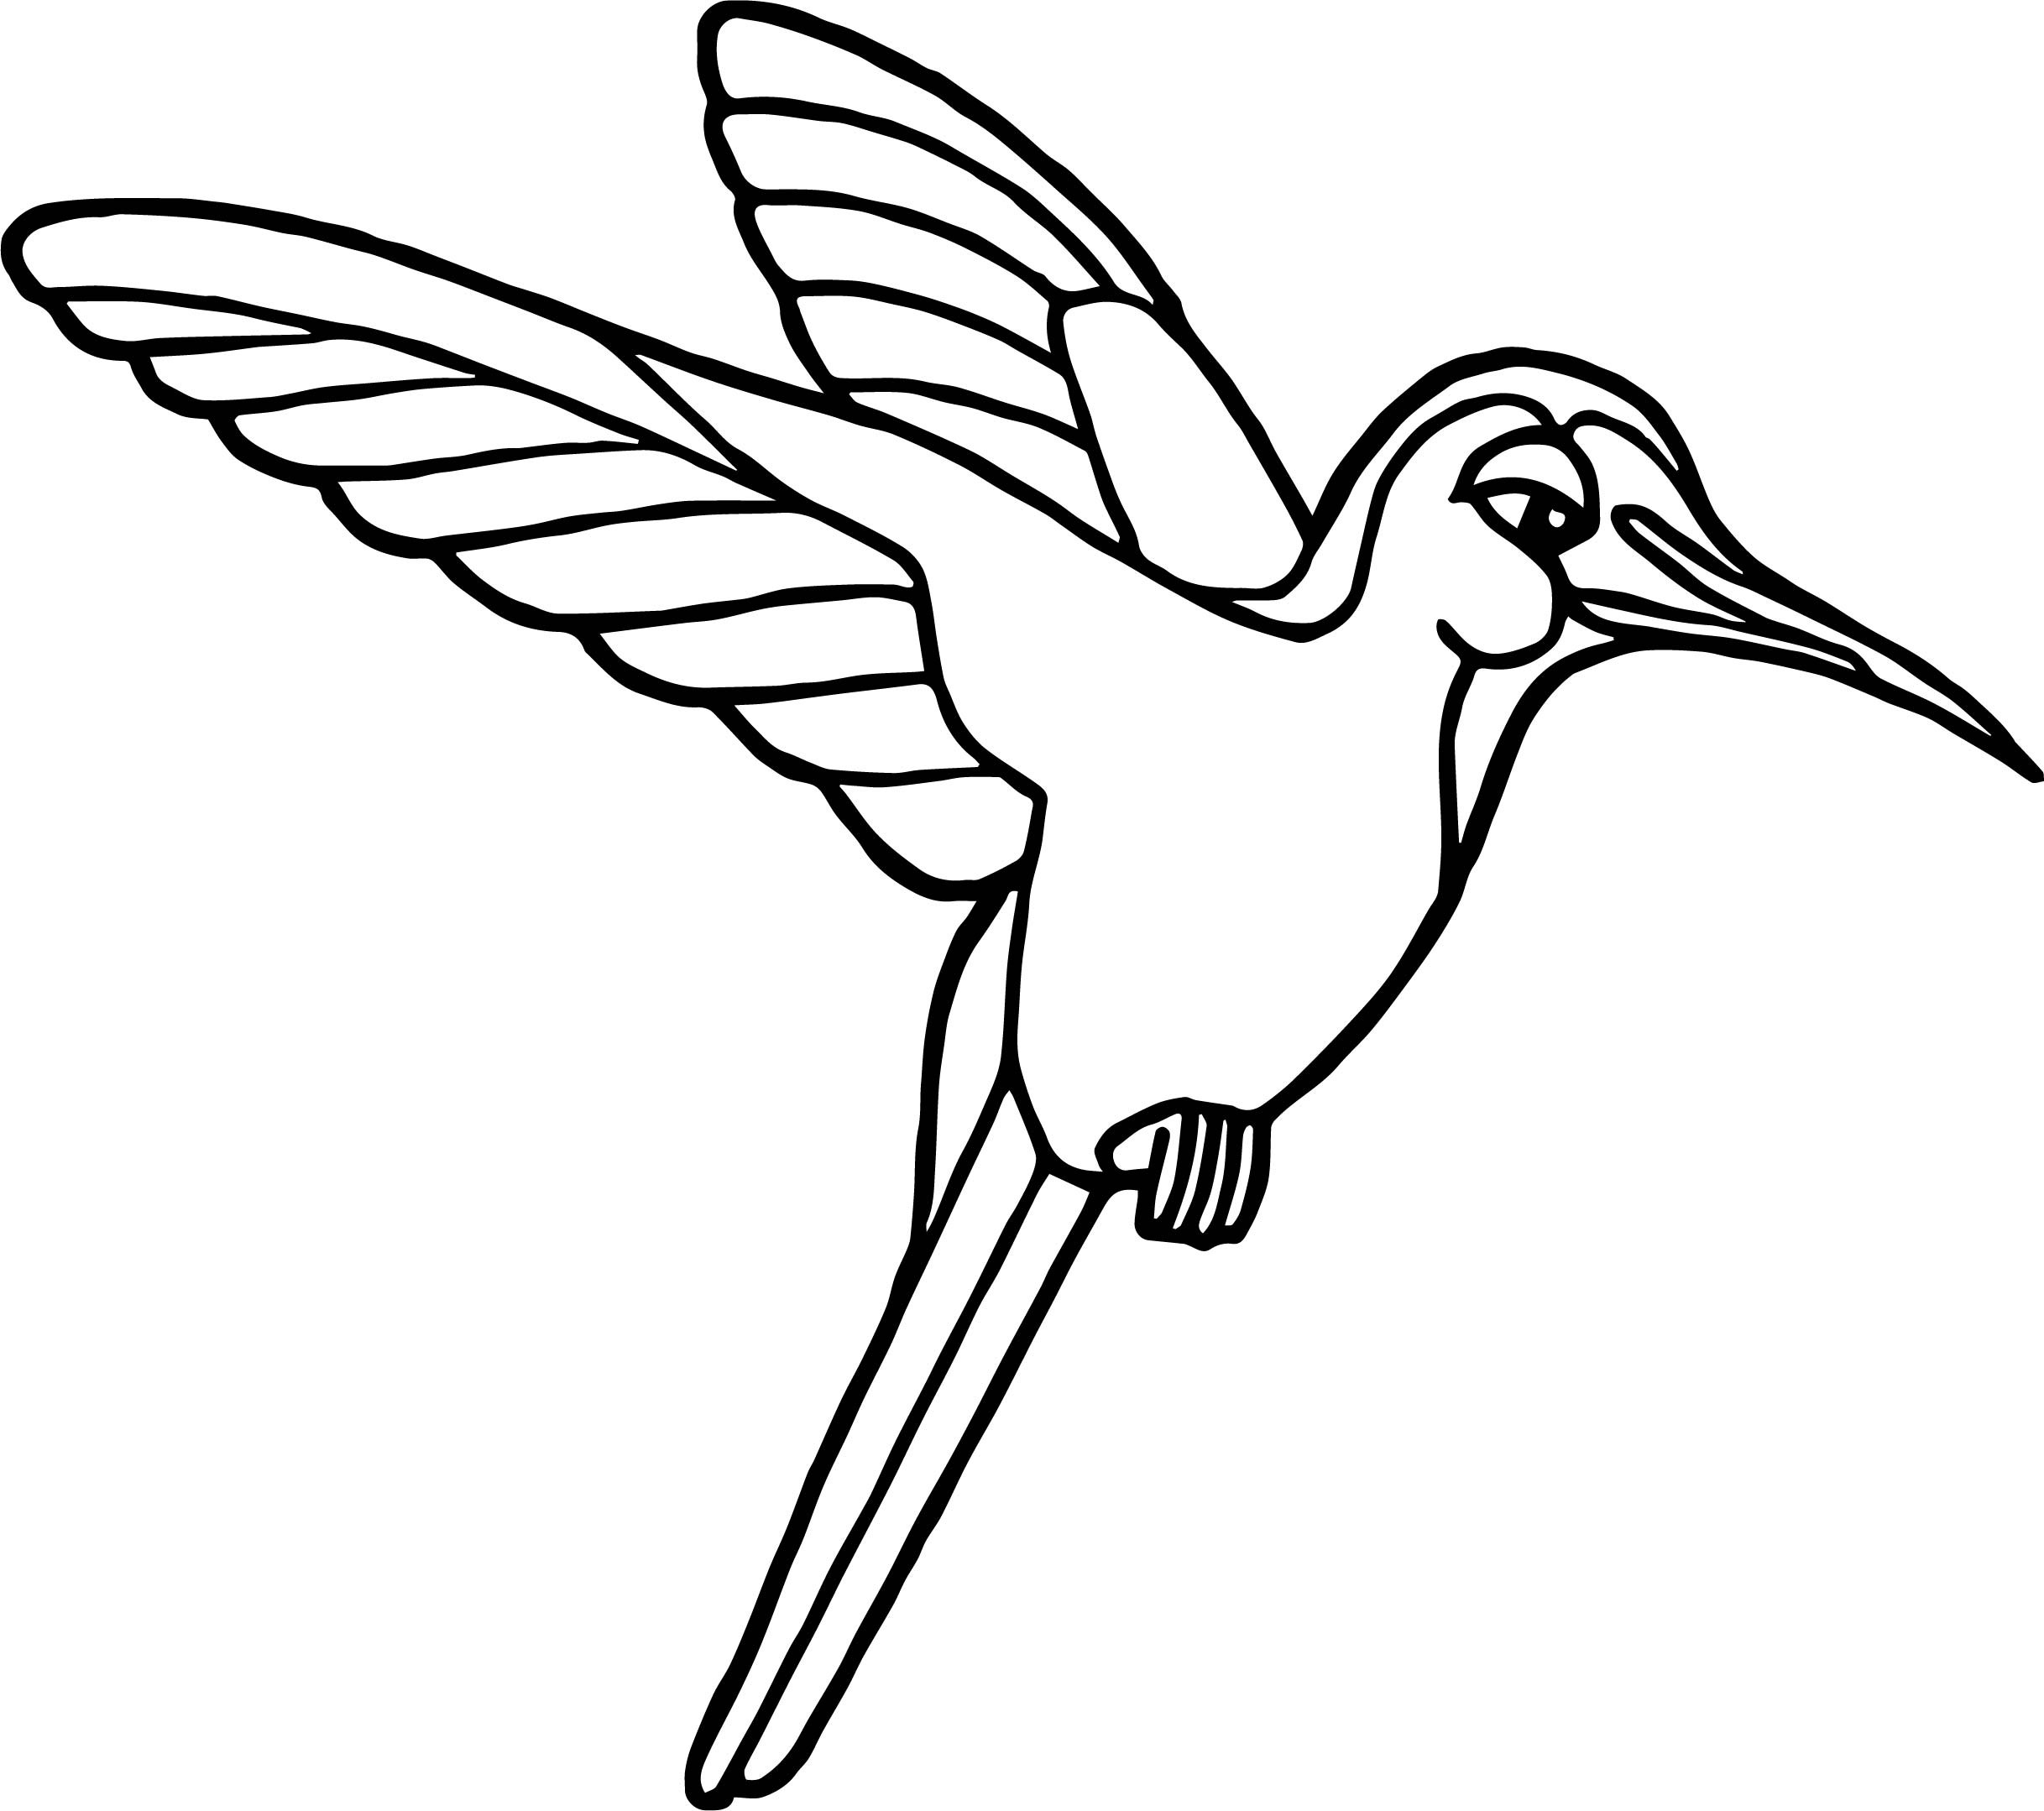 2435x2158 Collection Of Solutions Coloring Pages Of Birds In The Rainforest